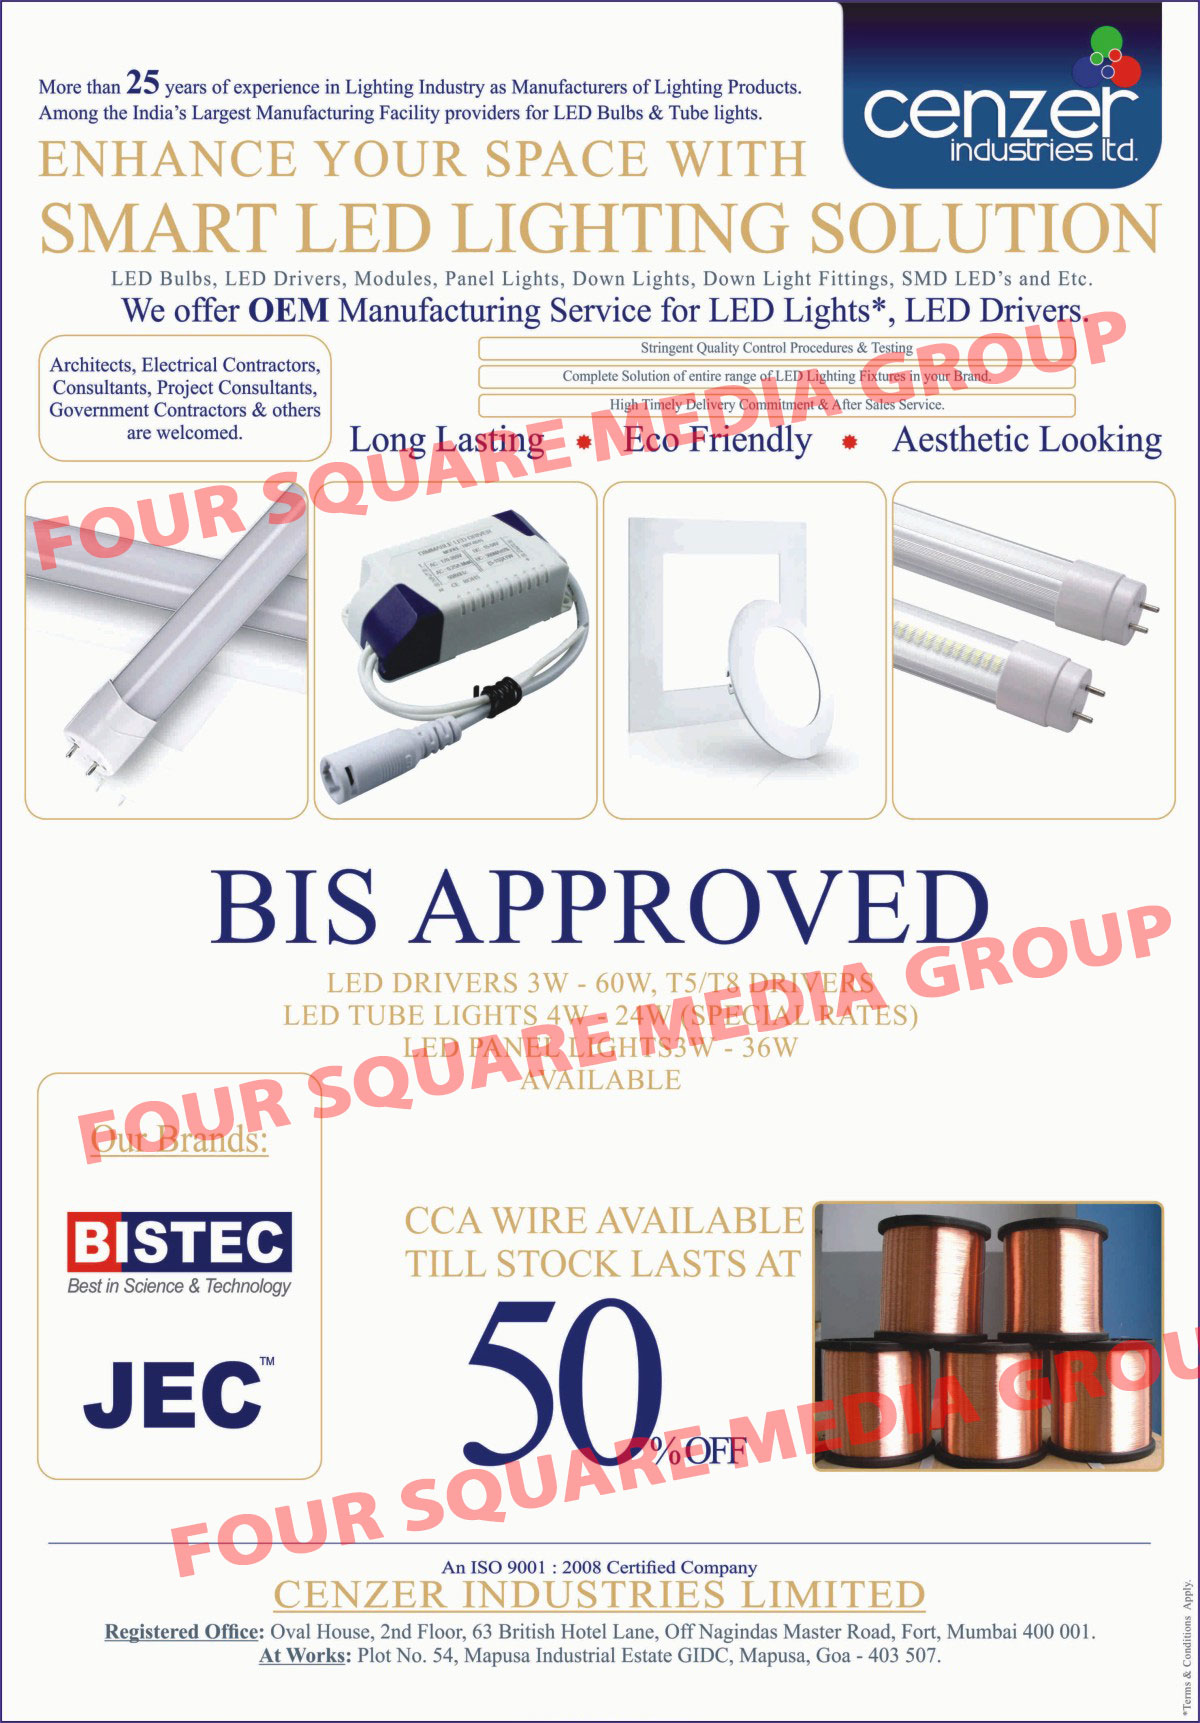 Led Lights, Led Bulbs, Led Flood Lights, Led Panel Lights, Led Down